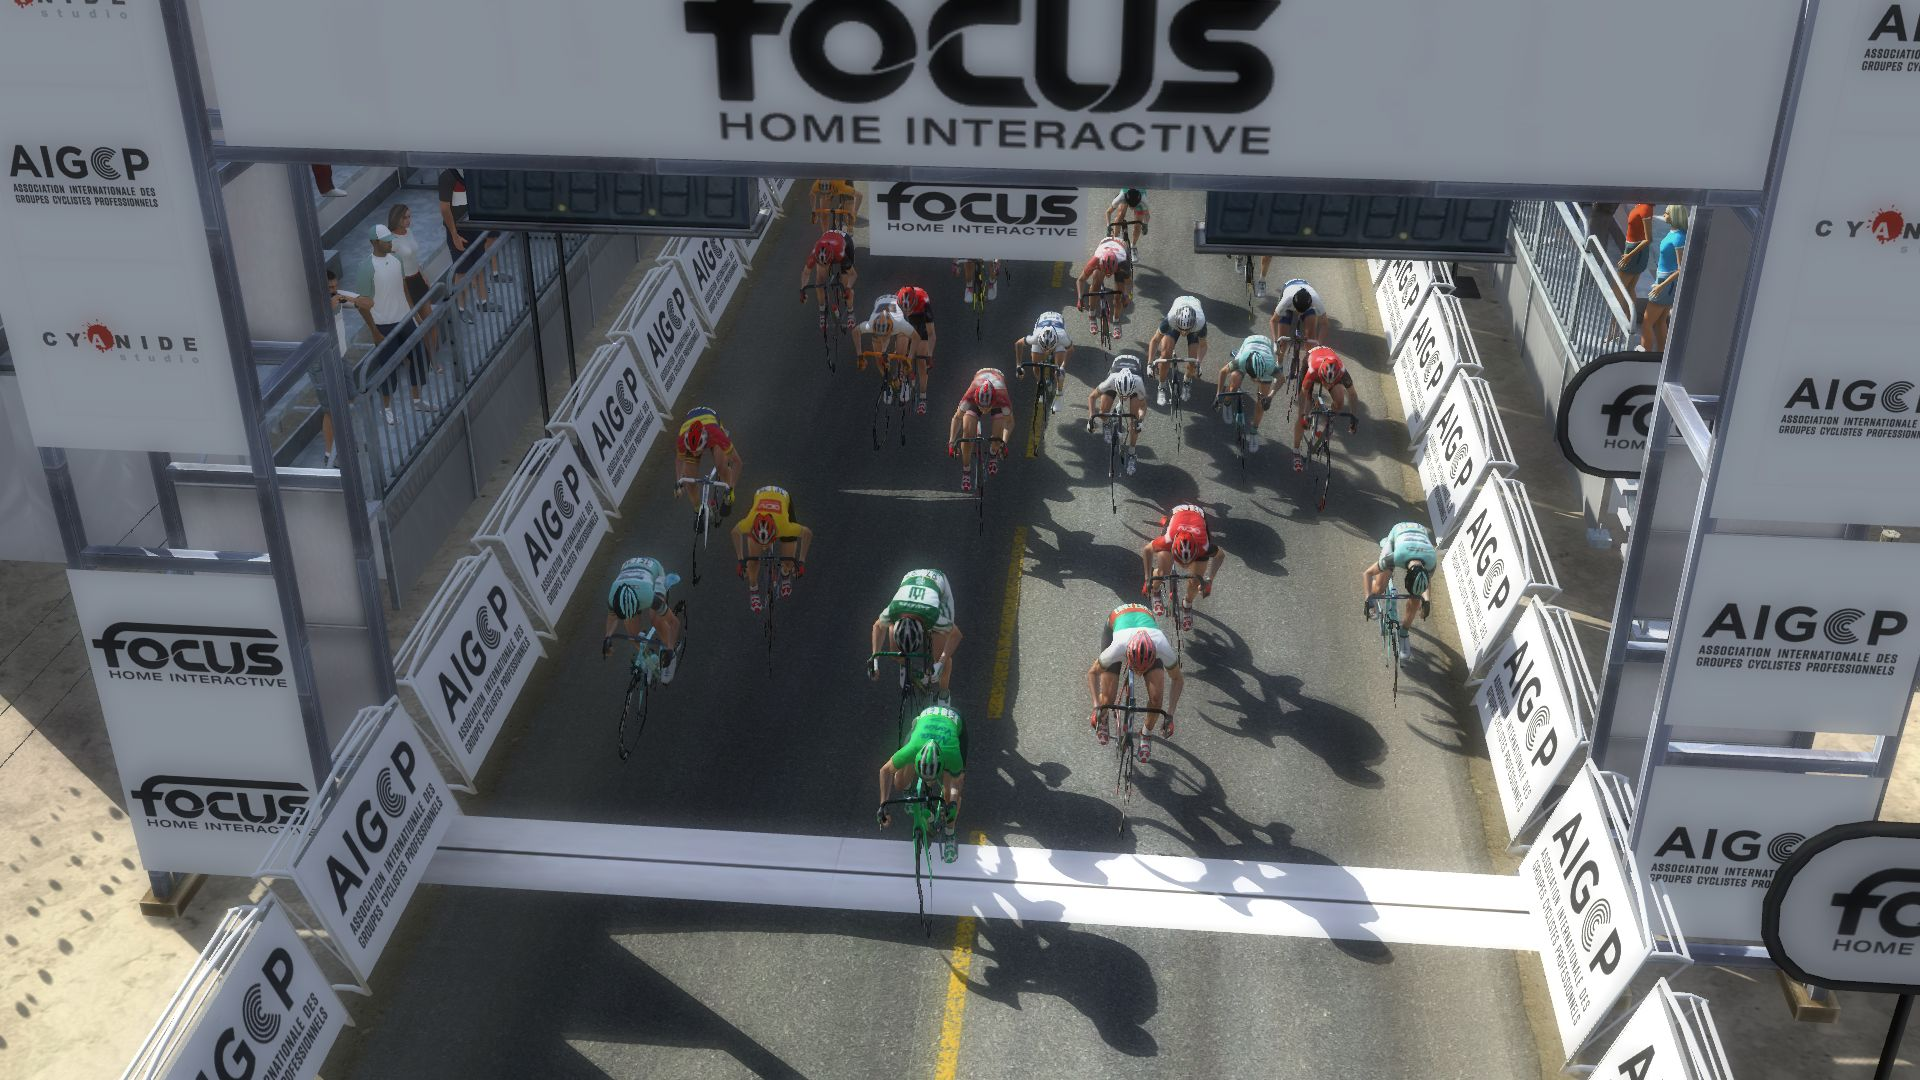 pcmdaily.com/images/mg/2019/Races/C2HC/Eritrea/TOES4%2019.jpg